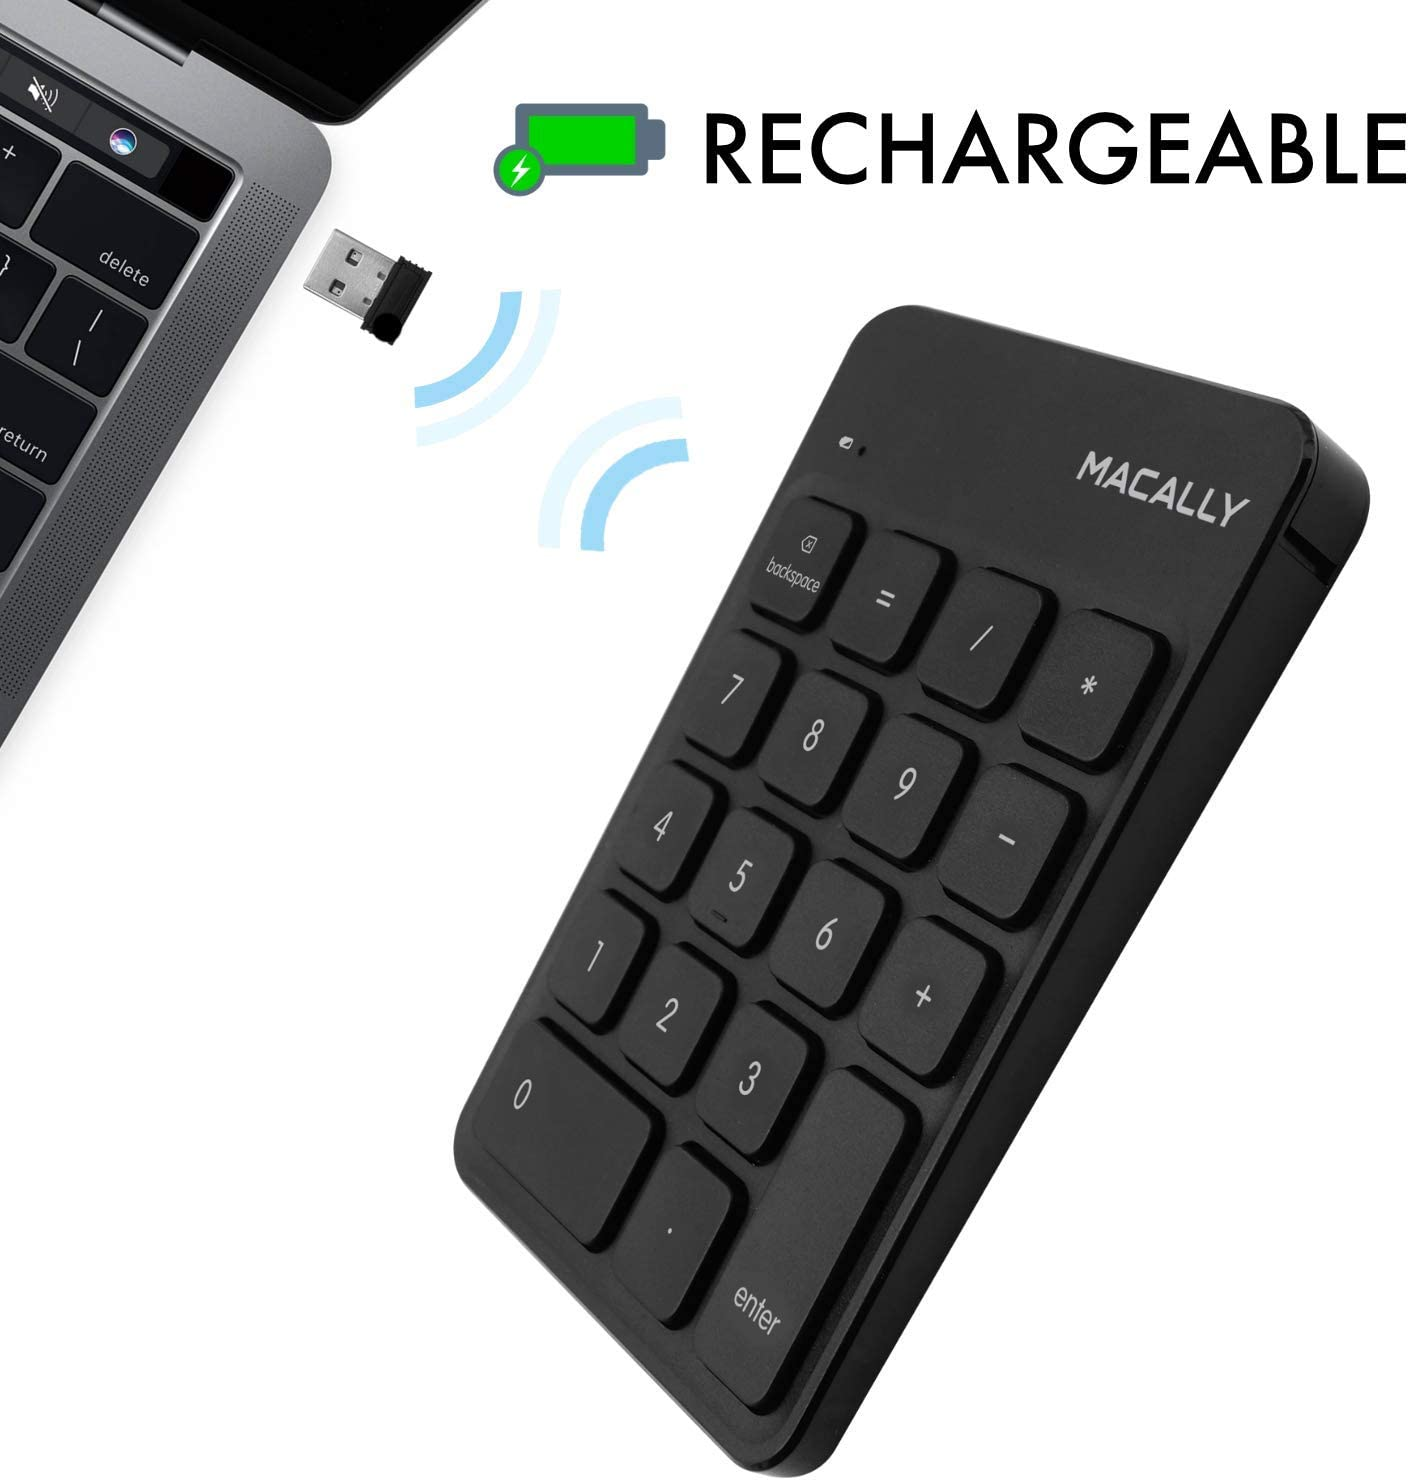 Macally 2.4G Wireless Numeric Keypad Keyboard for Laptop, Apple Mac iMac MacBook Pro/Air, Windows PC, or Desktop Computer with USB Receiver & Rechargeable 18 Key Slim Number Pad - Black